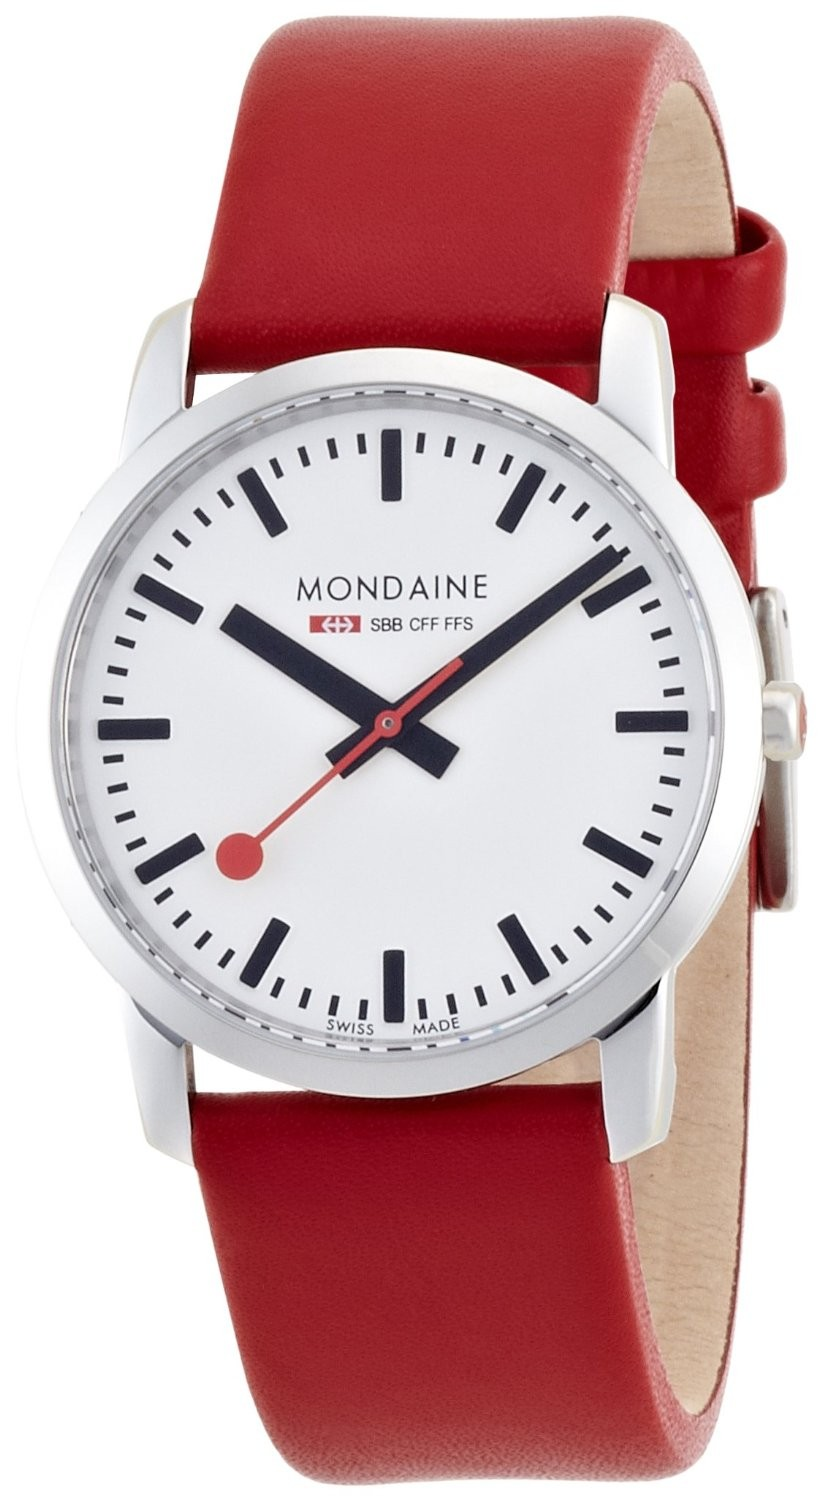 Mondaine swiss watch SIMPLY ELEGANT LADIES - A400.30351.11SBC